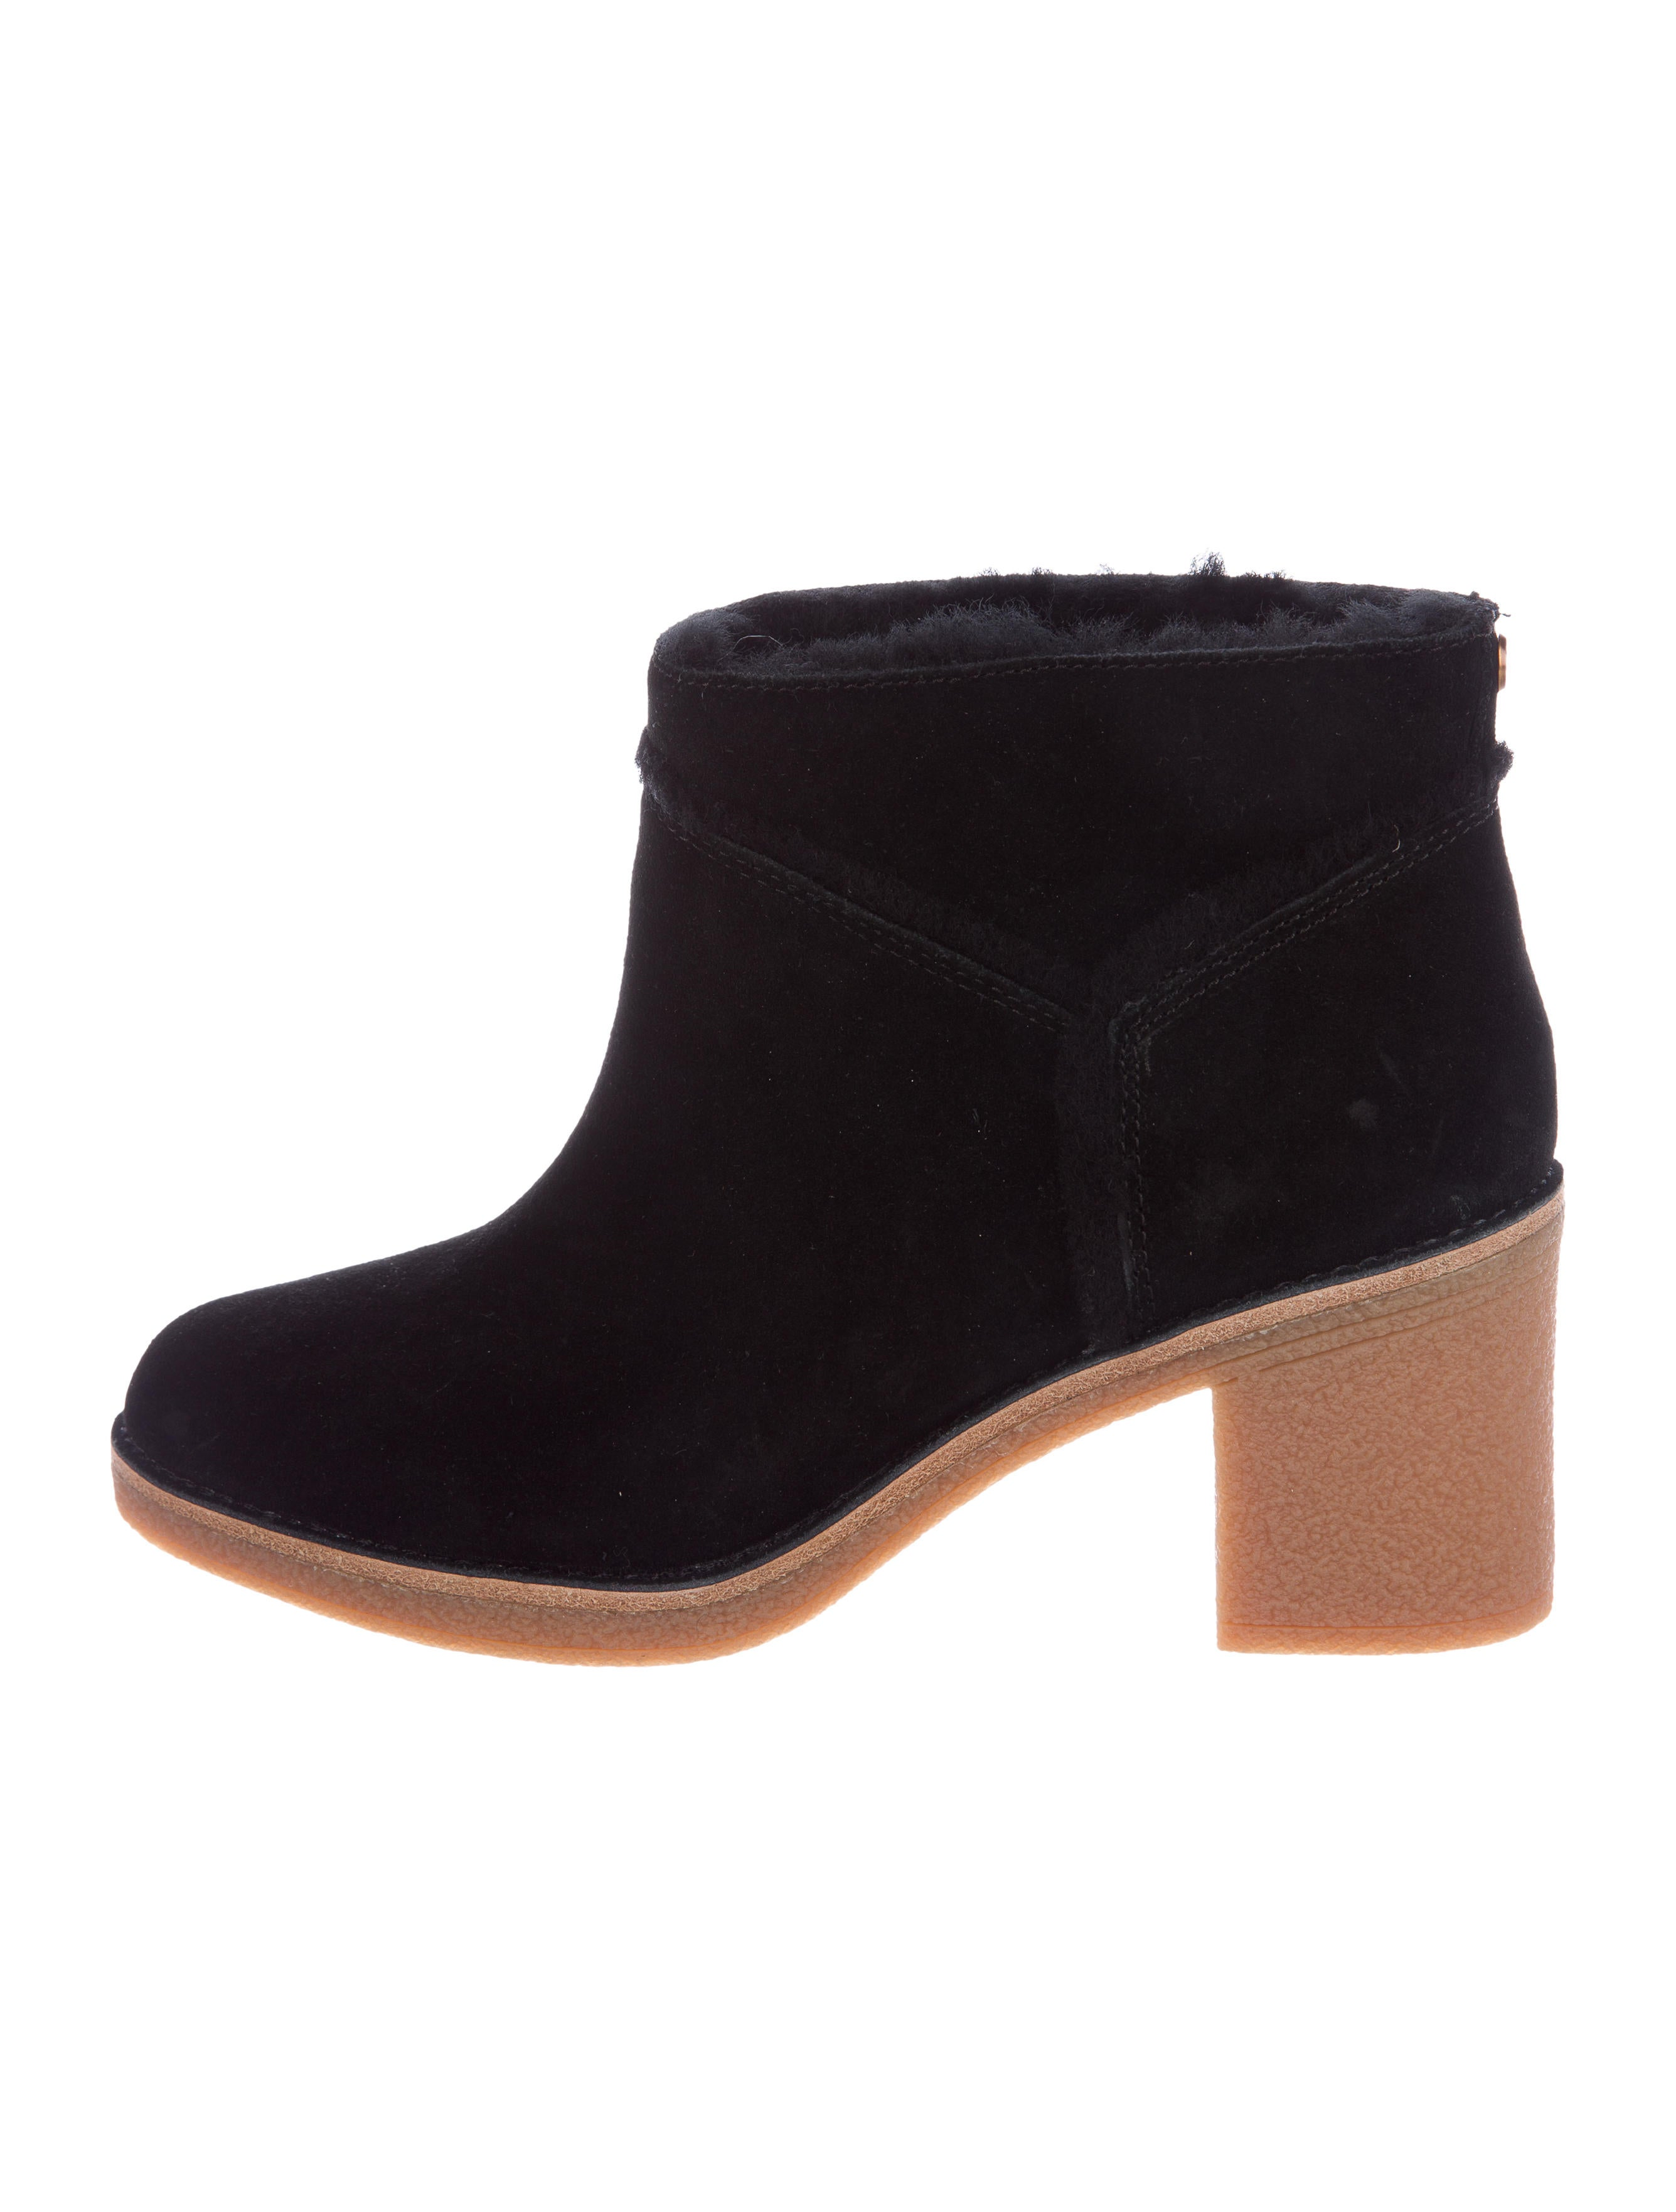 UGG Australia Kasen Suede Booties w/ Tags free shipping official low cost clearance outlet clearance latest collections brand new unisex online 8fZONwCG